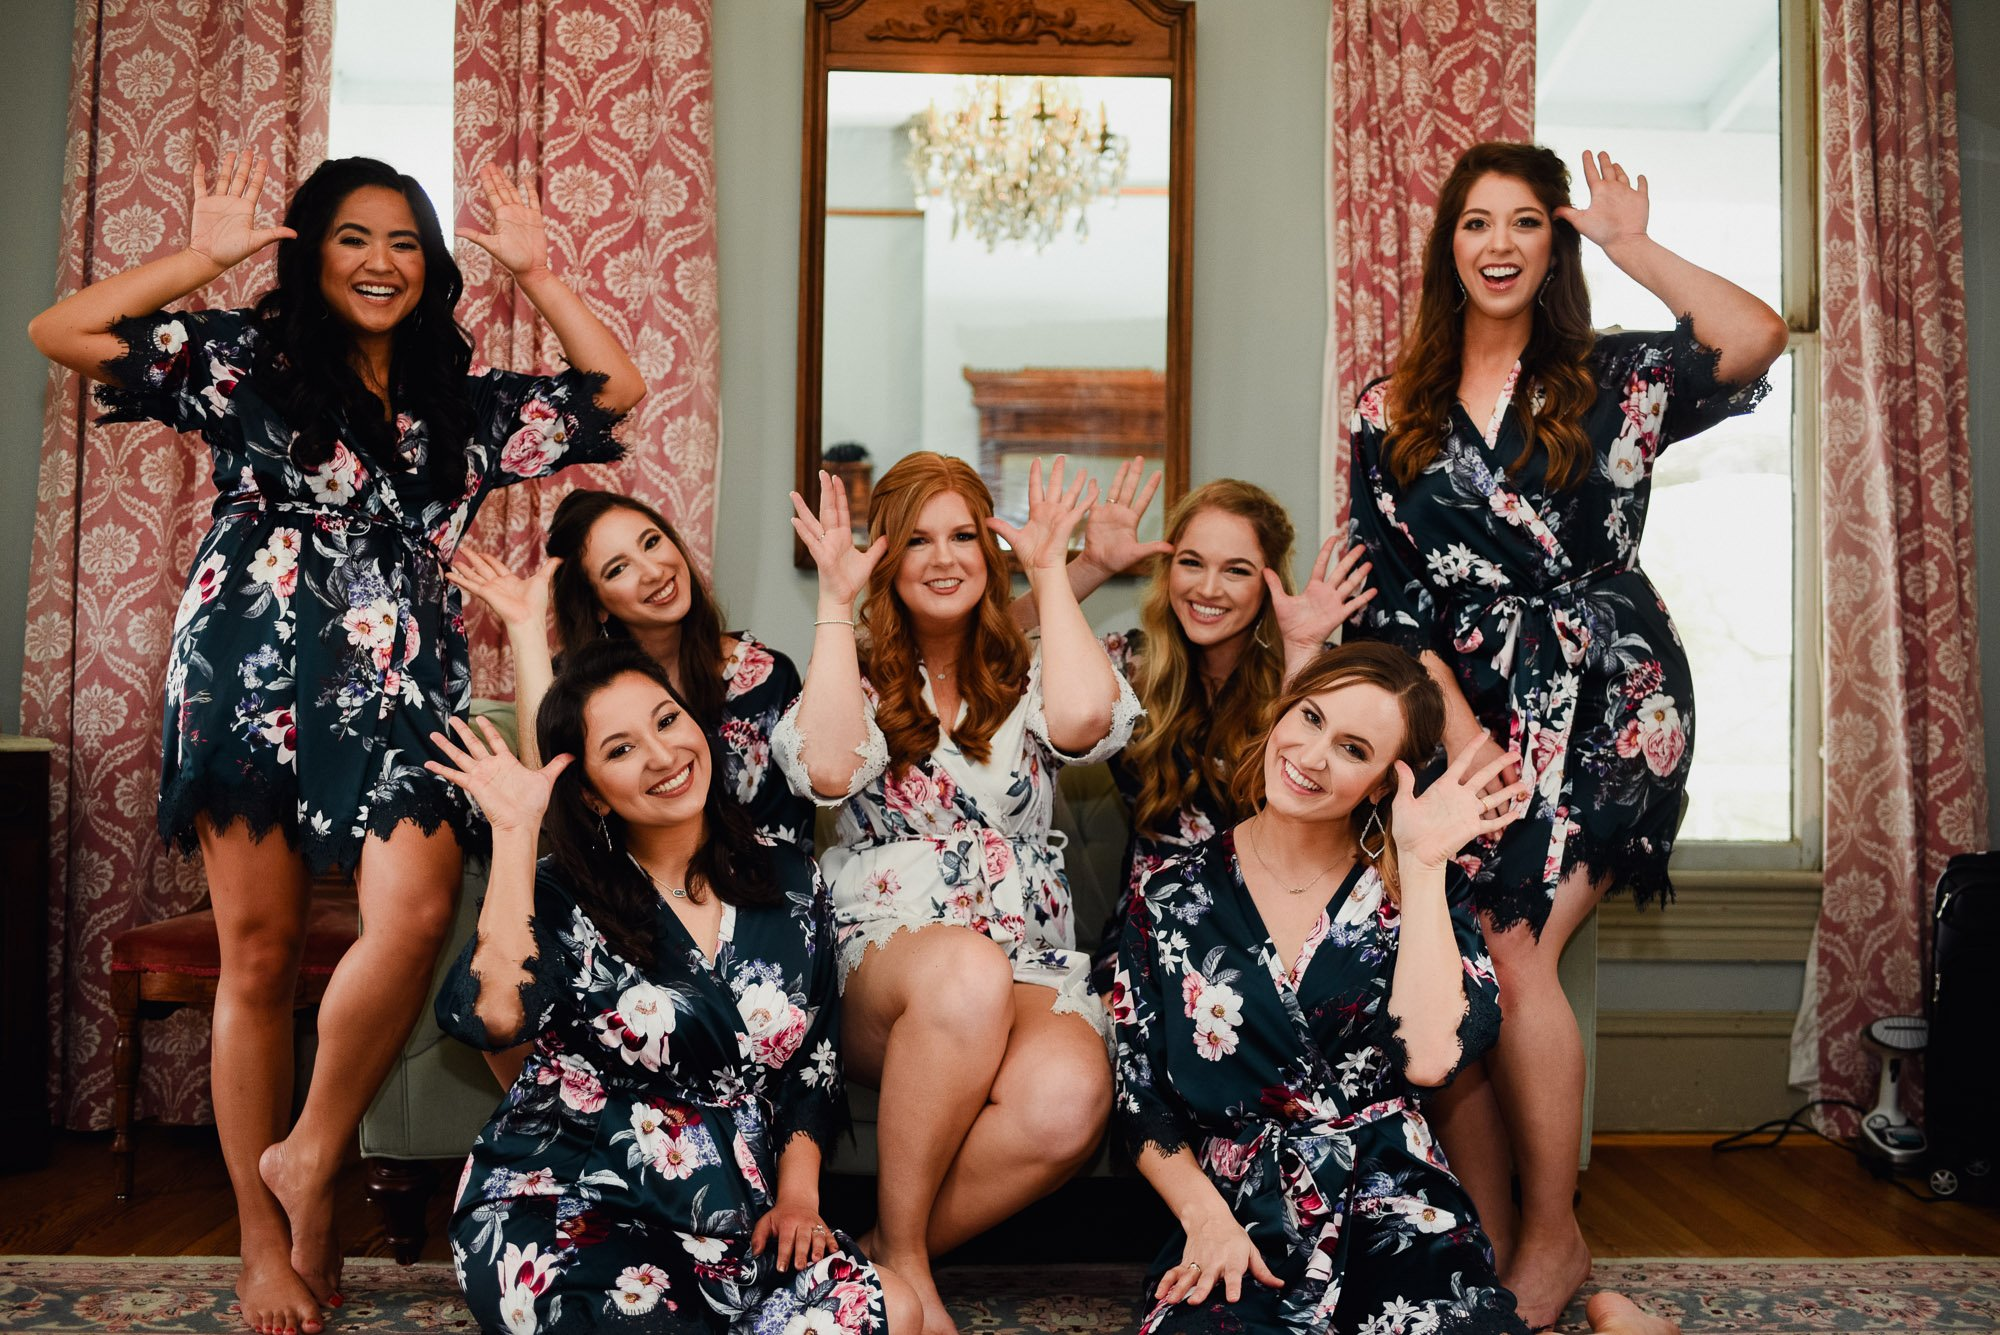 bridesmaids being goofy in matching floral robes at a barr mansion wedding